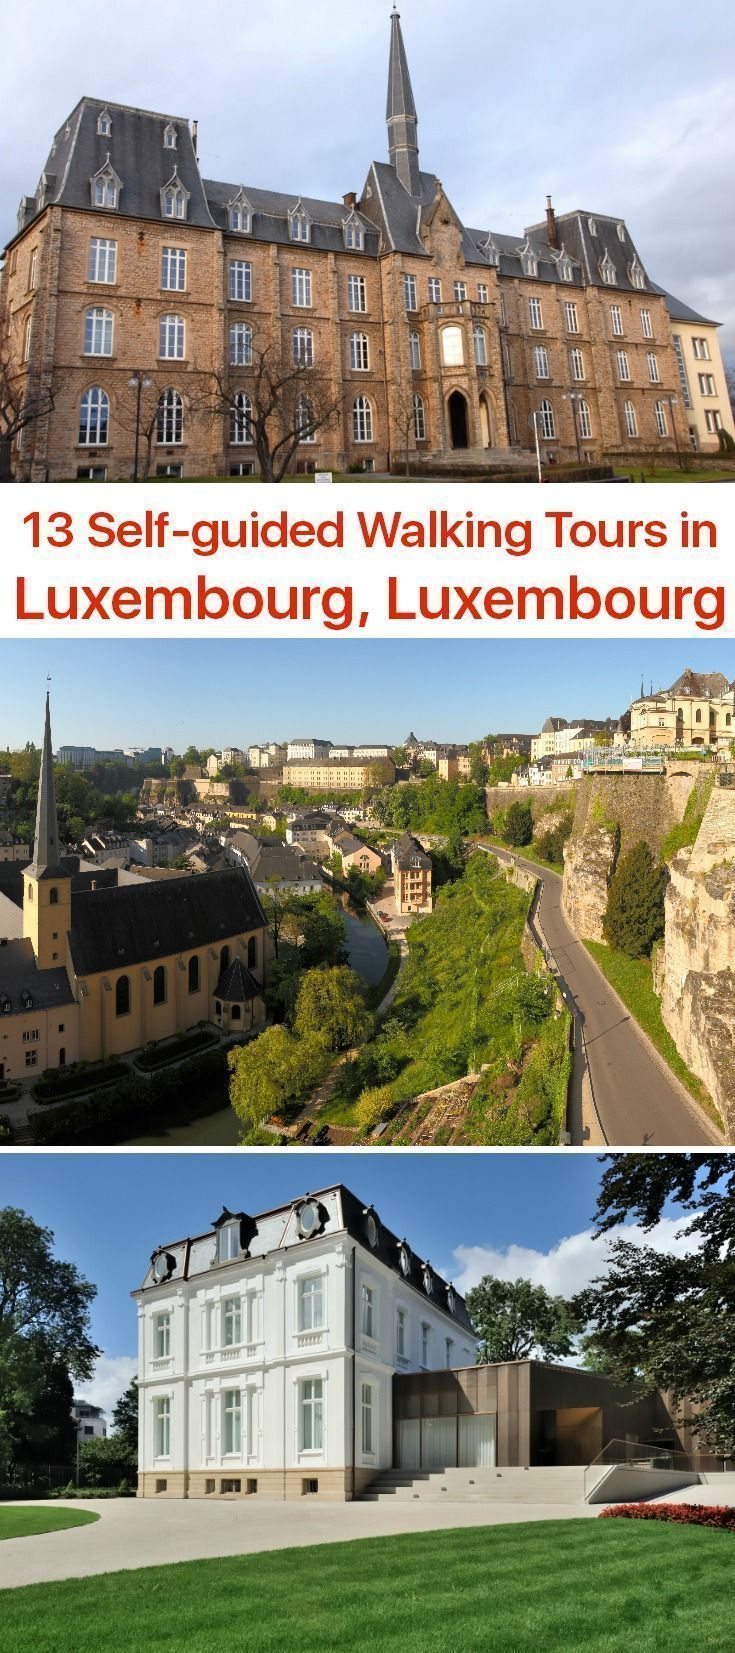 Walking Tours in Luxembourg, Luxembourg Tours